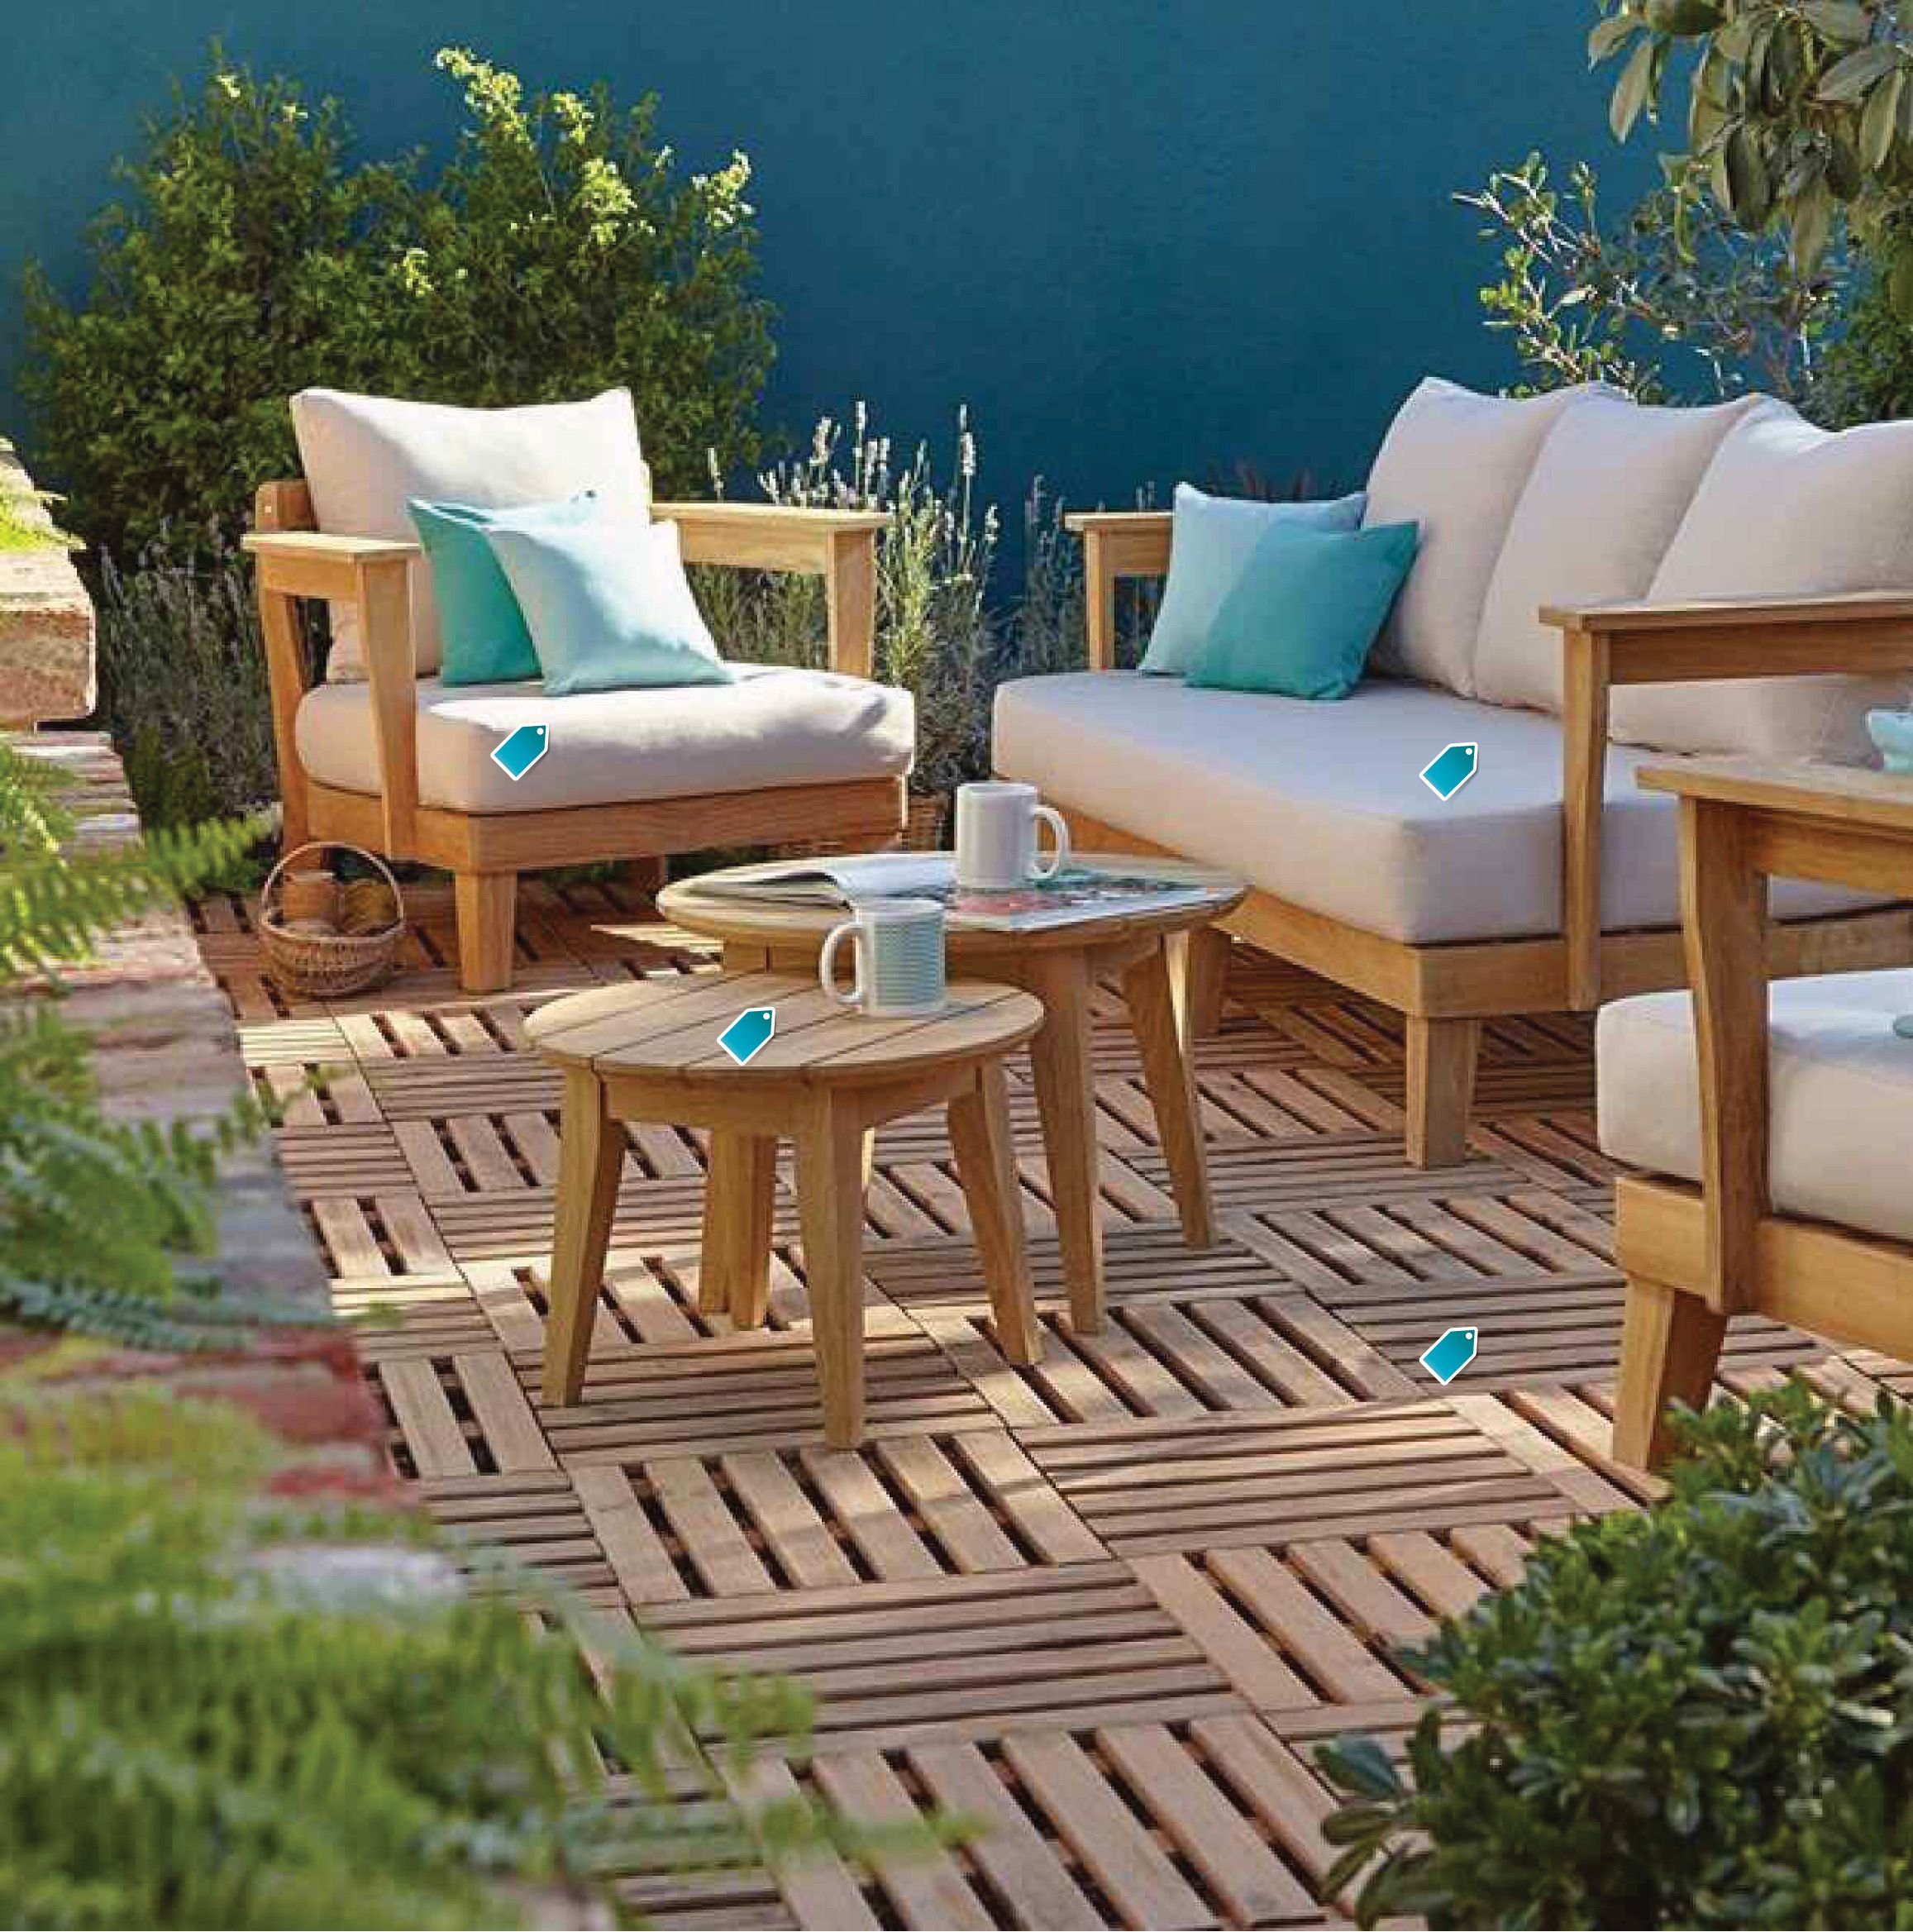 B And Q Garden Furniture